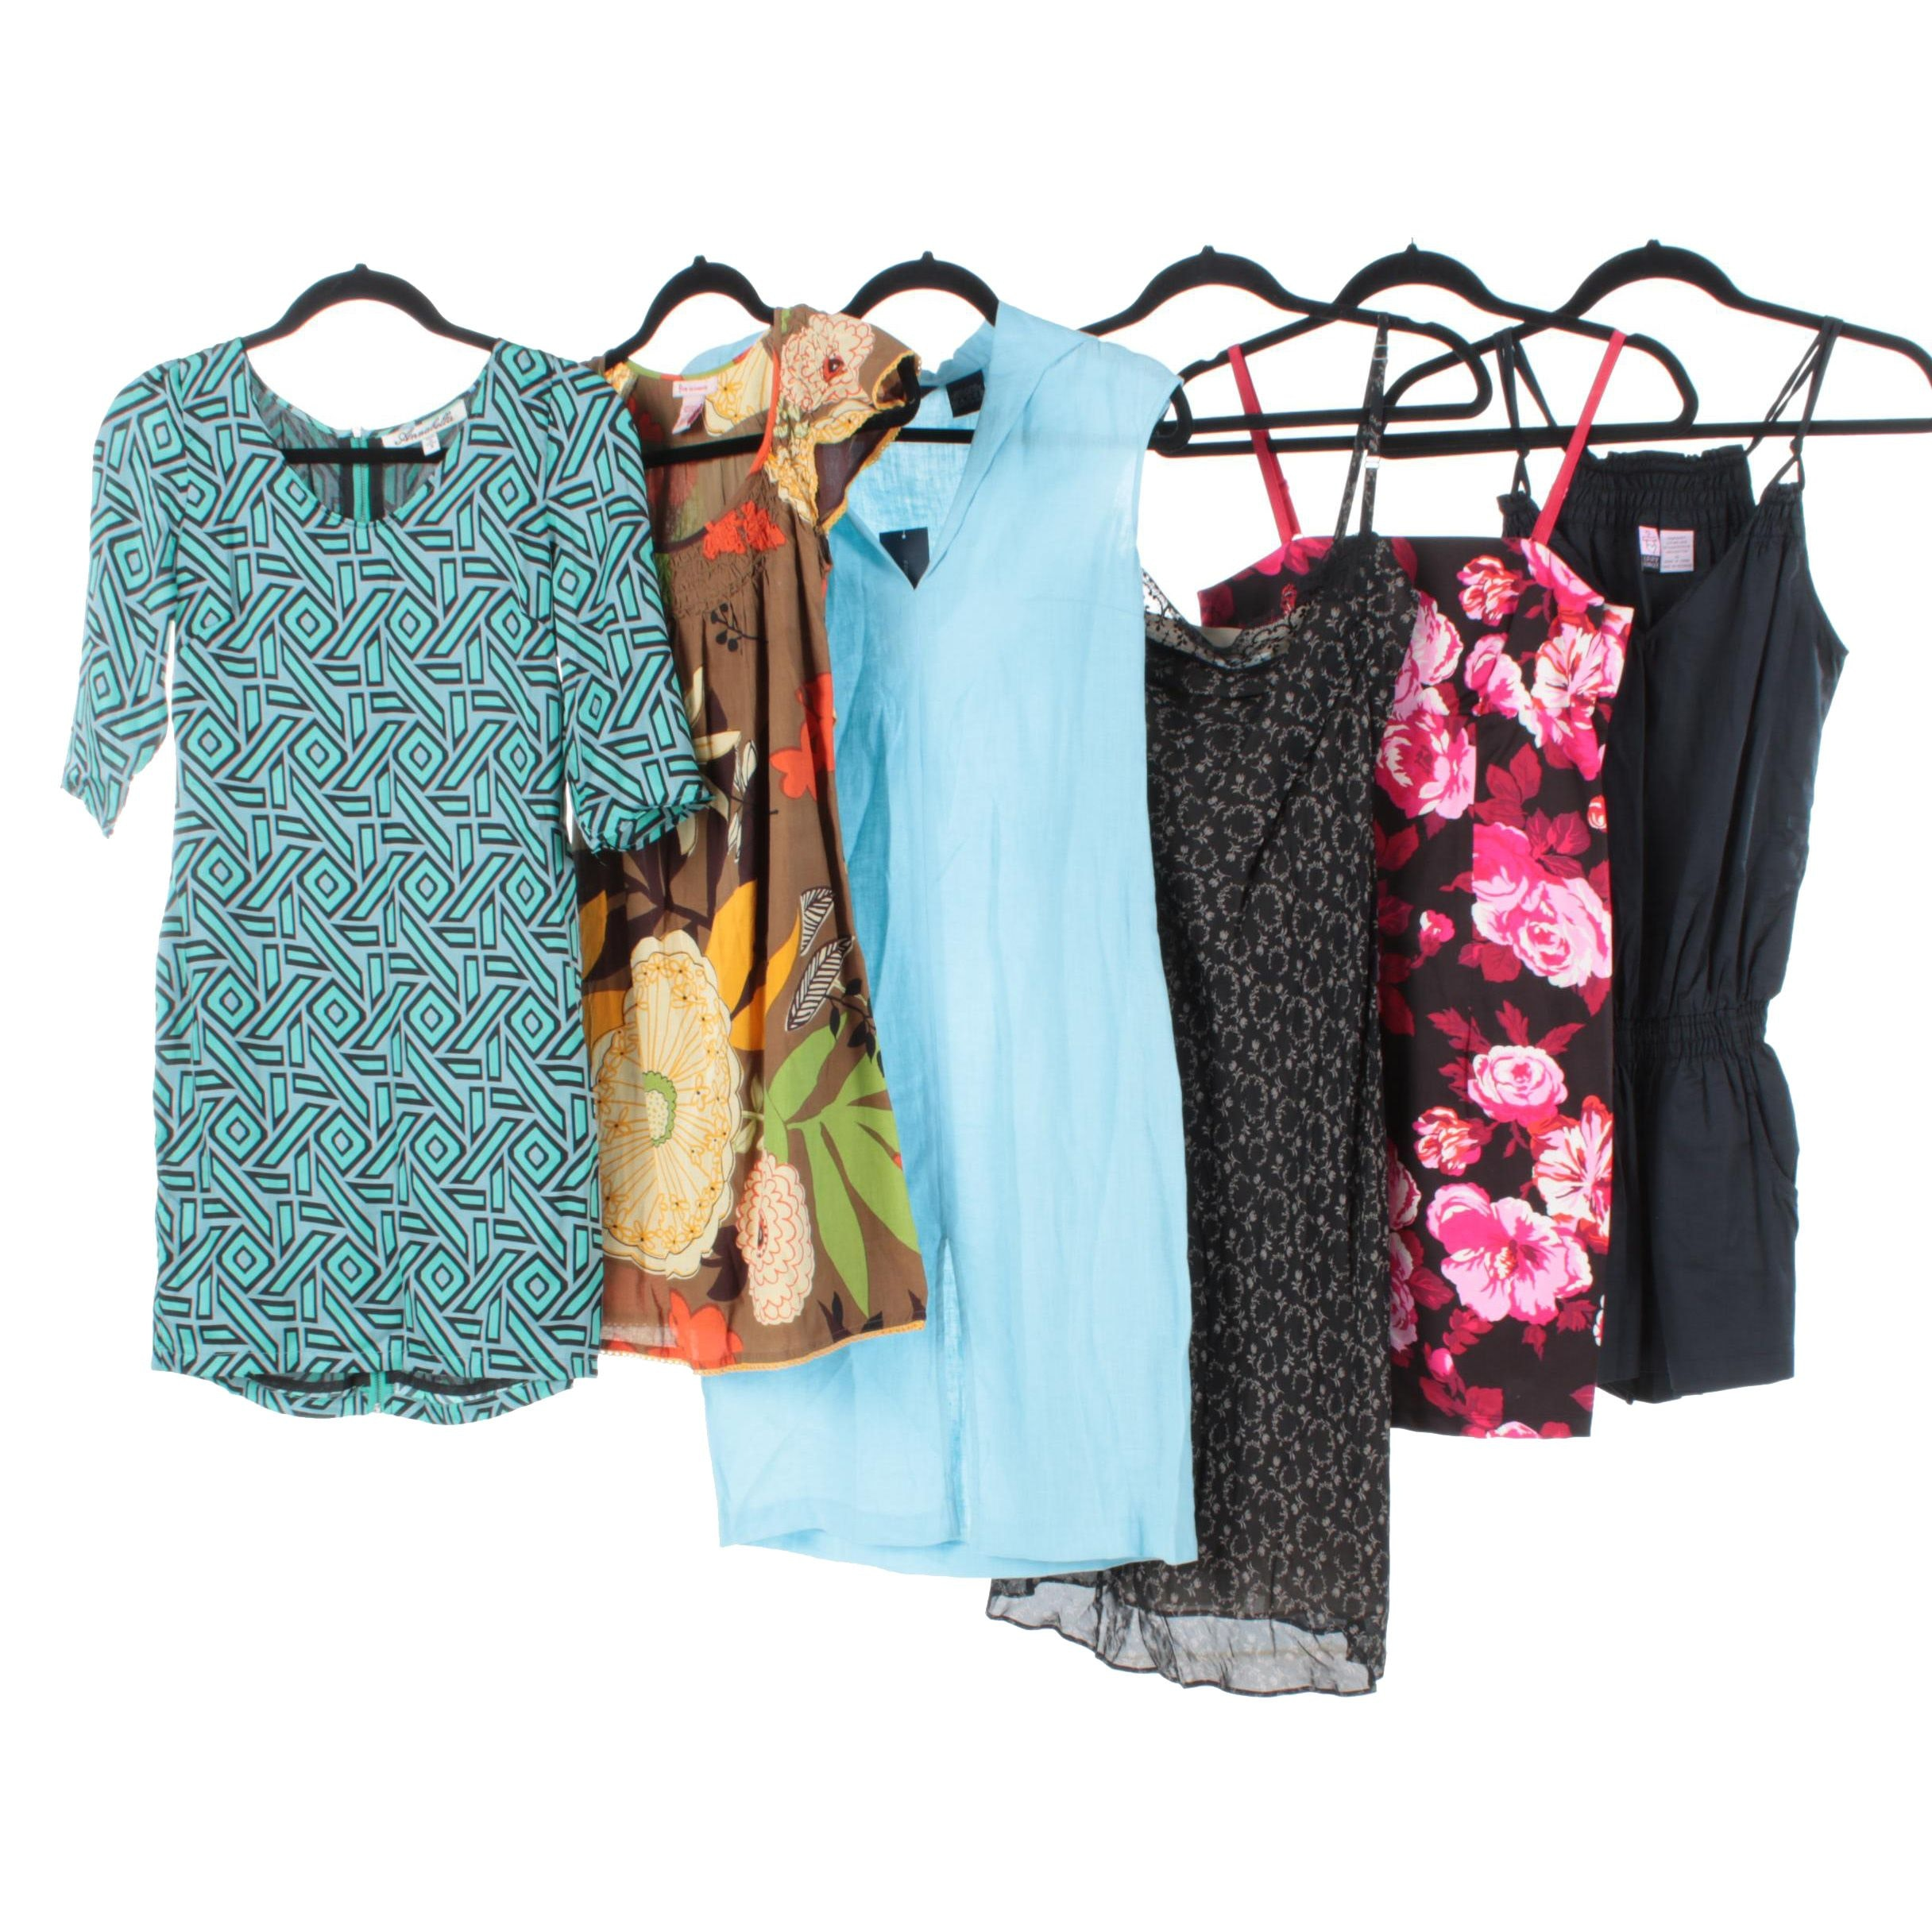 Women's Casual Summer Dresses and Romper Including Caché